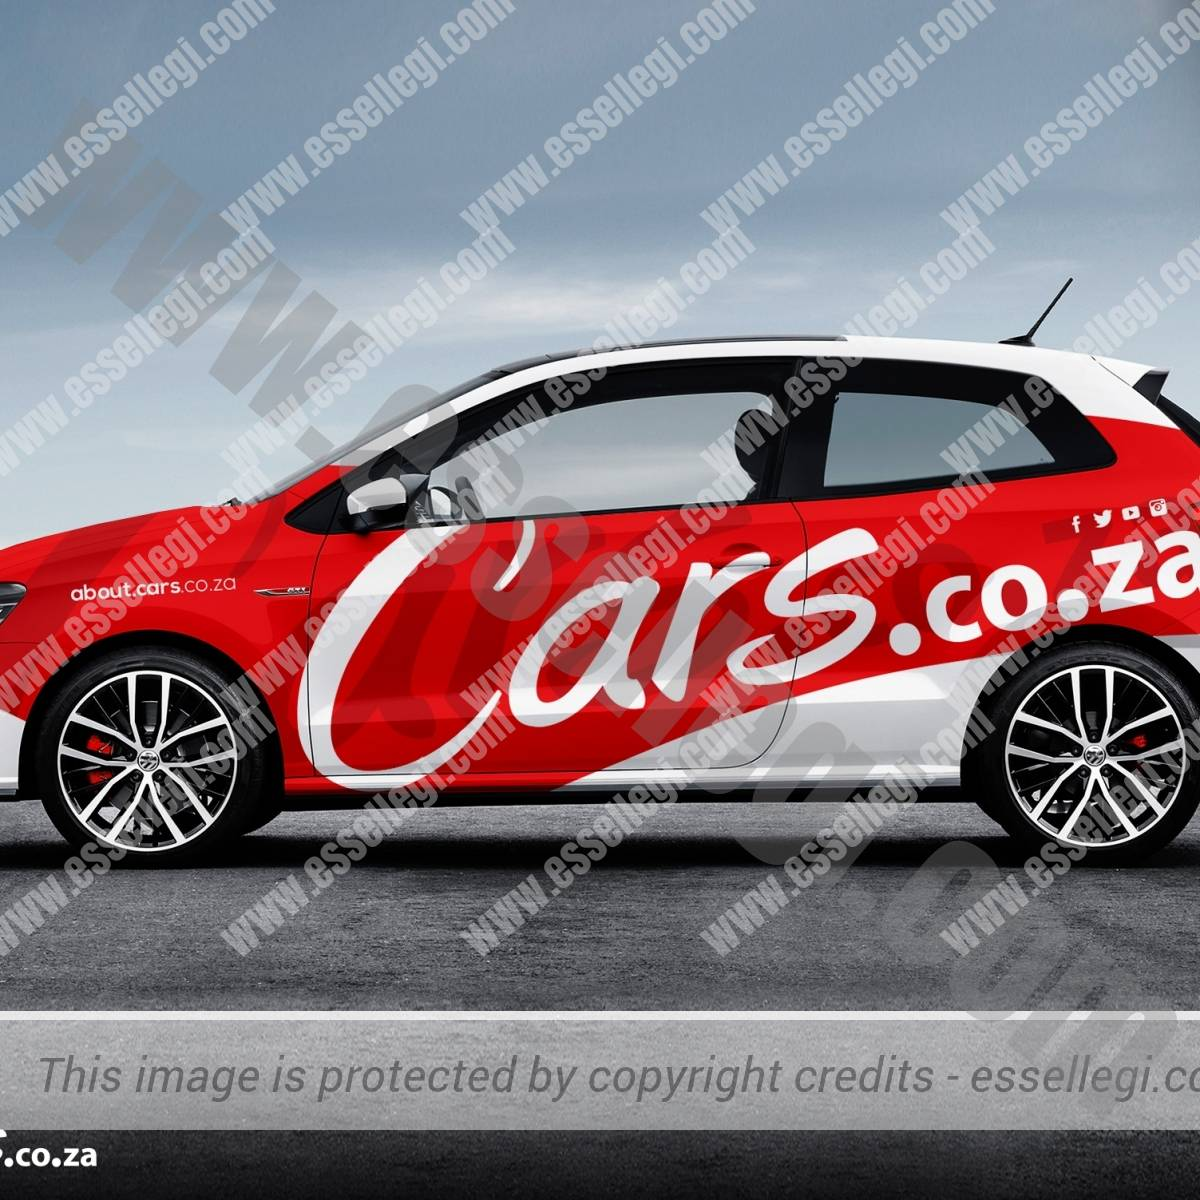 CARS.CO.ZA | CAR WRAP DESIGN 🇿🇦